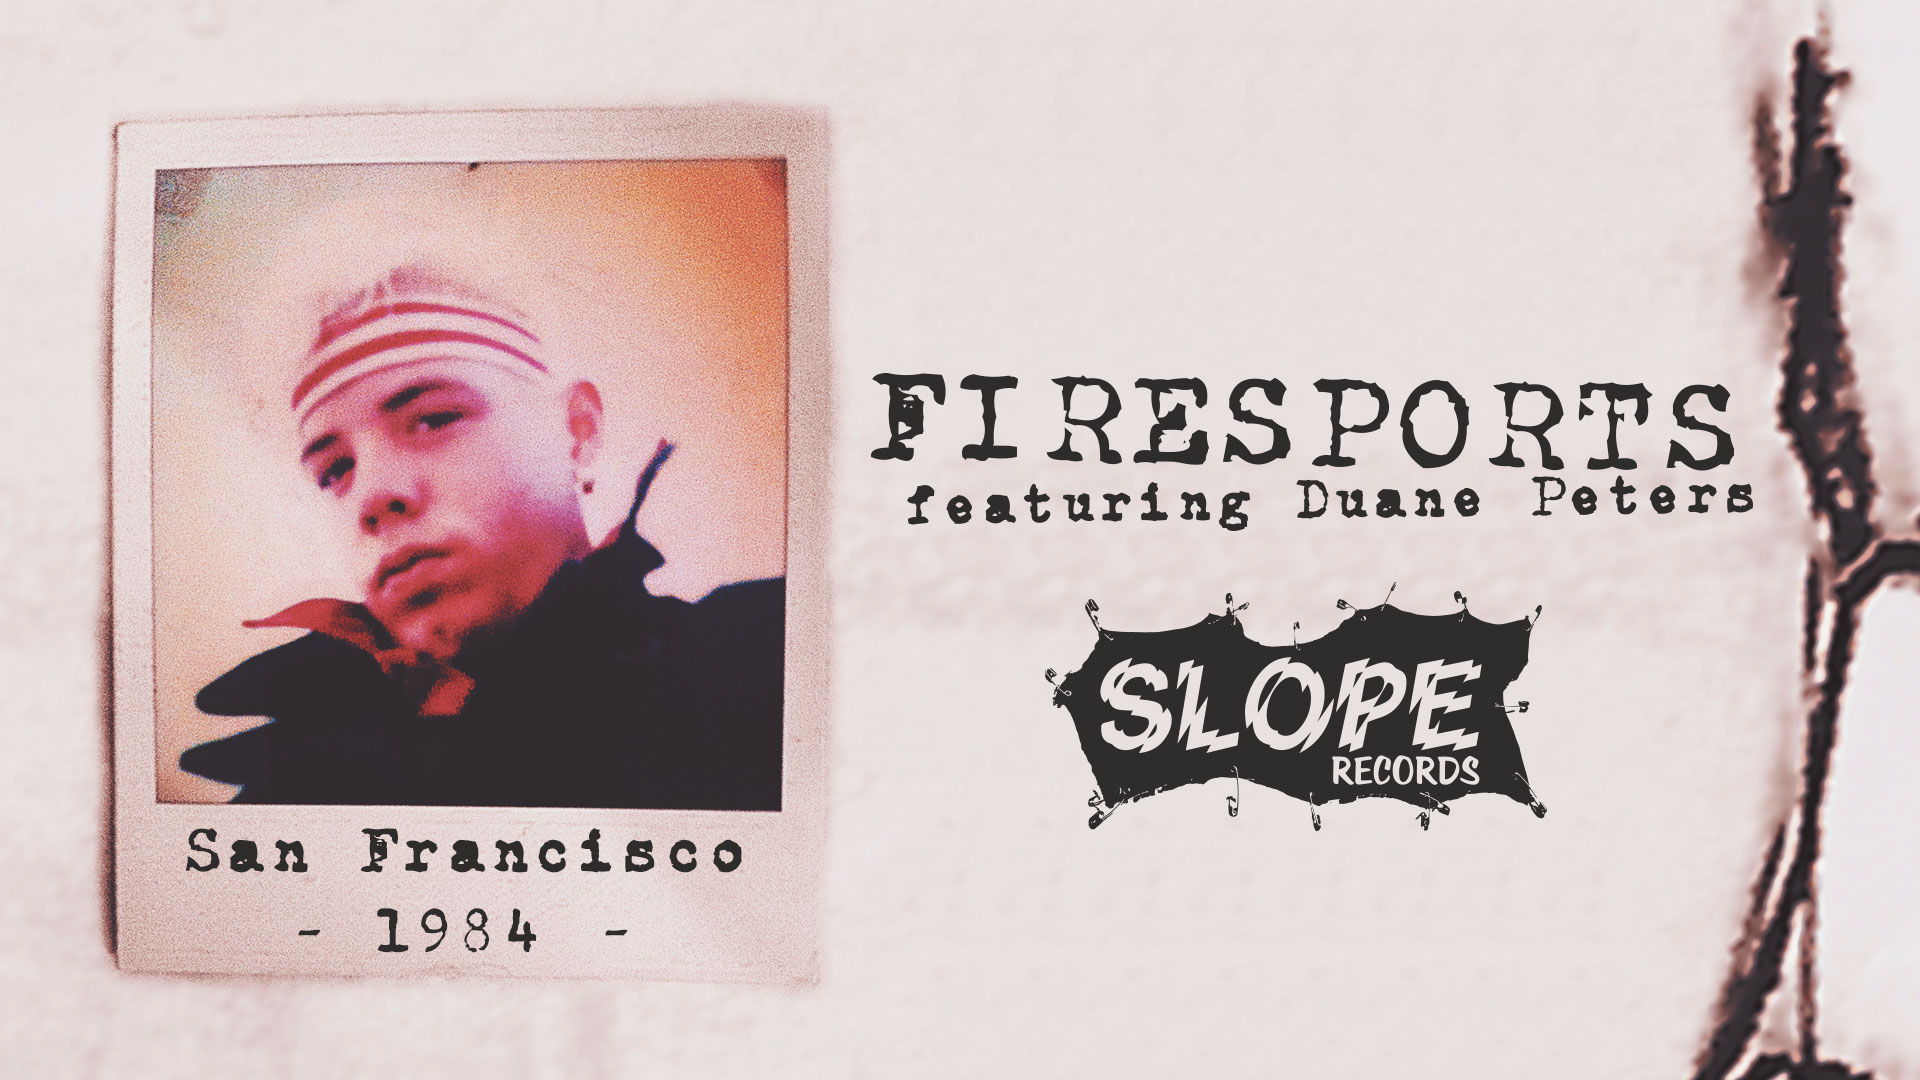 Firesports featuring Duane Peters - Slope Records